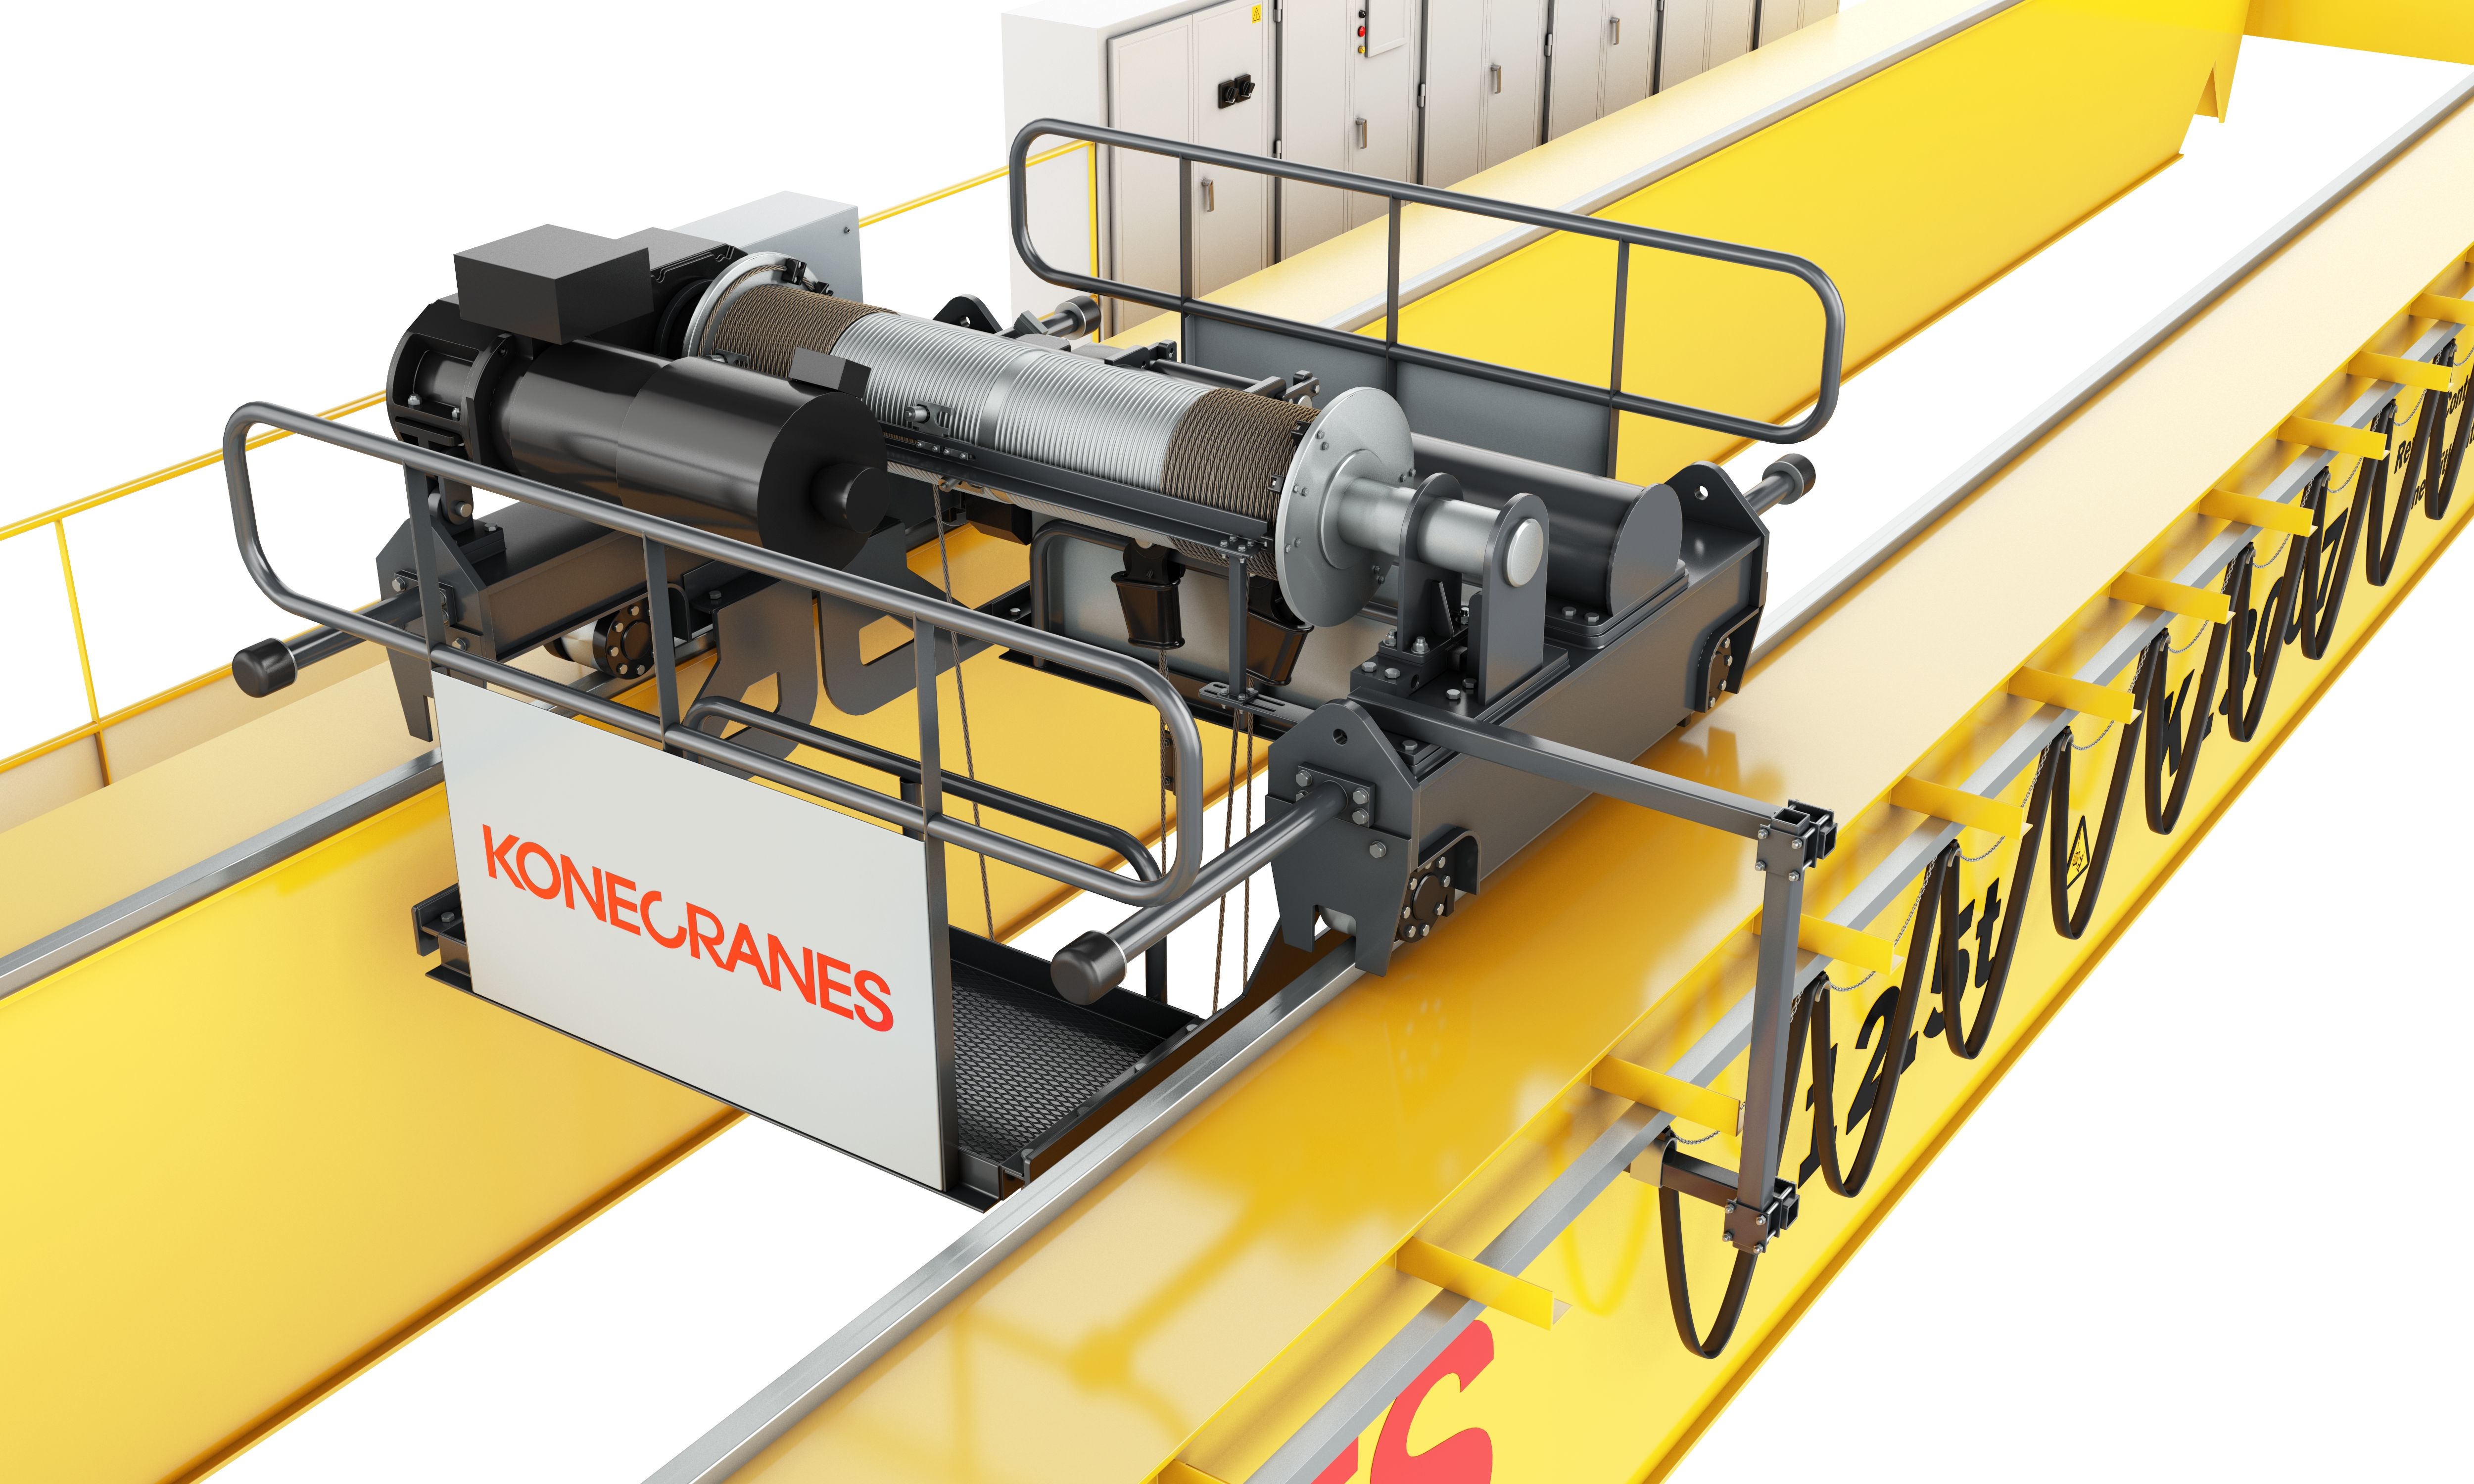 Kone Crane Parts Wiring Diagram Konecranes Introduces A New Heavy Duty Overhead To The Middle 5000x3000